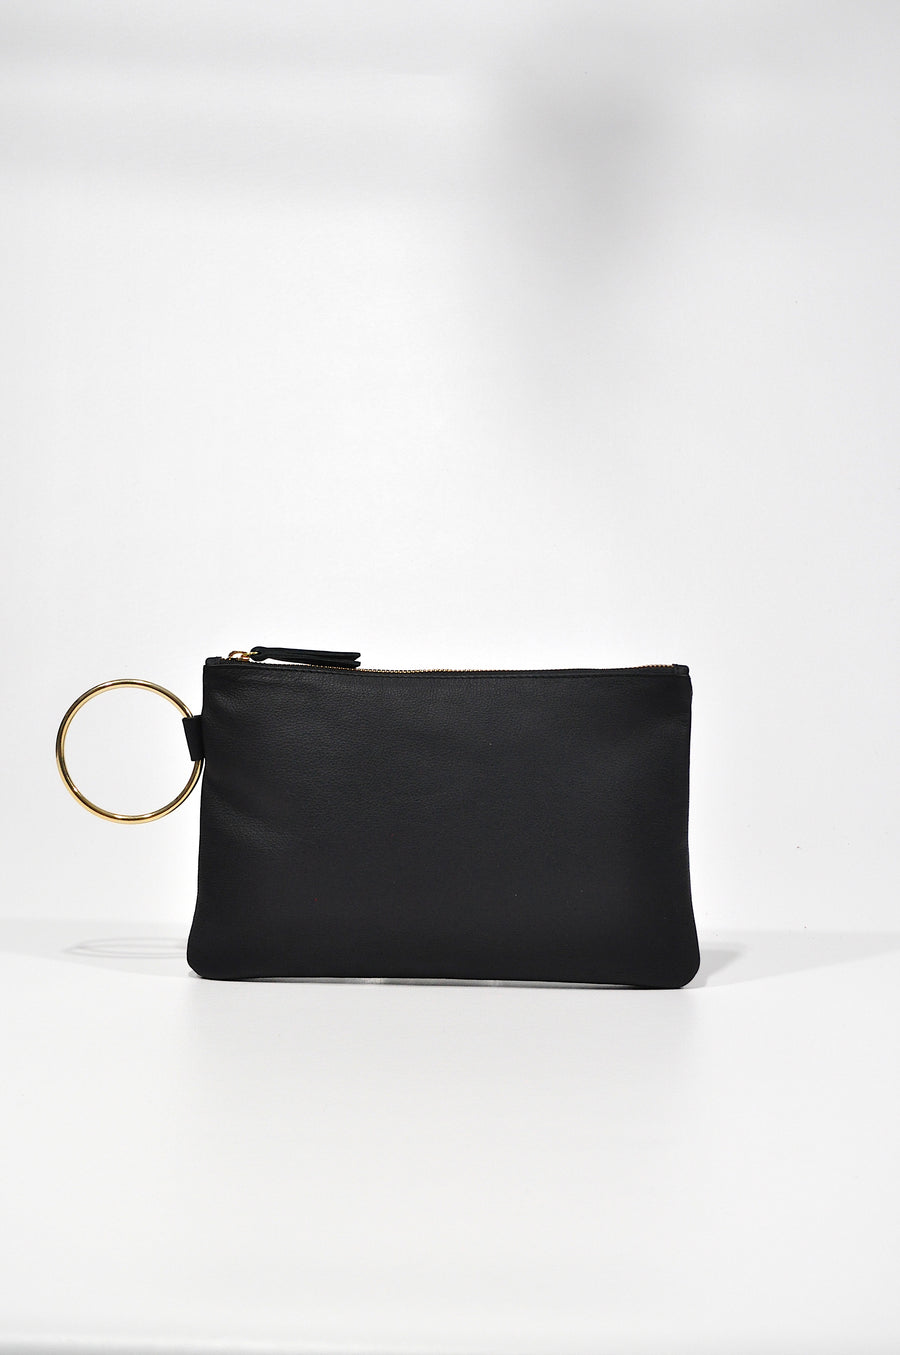 Gavi Leather Clutch - Black - Positive Elements